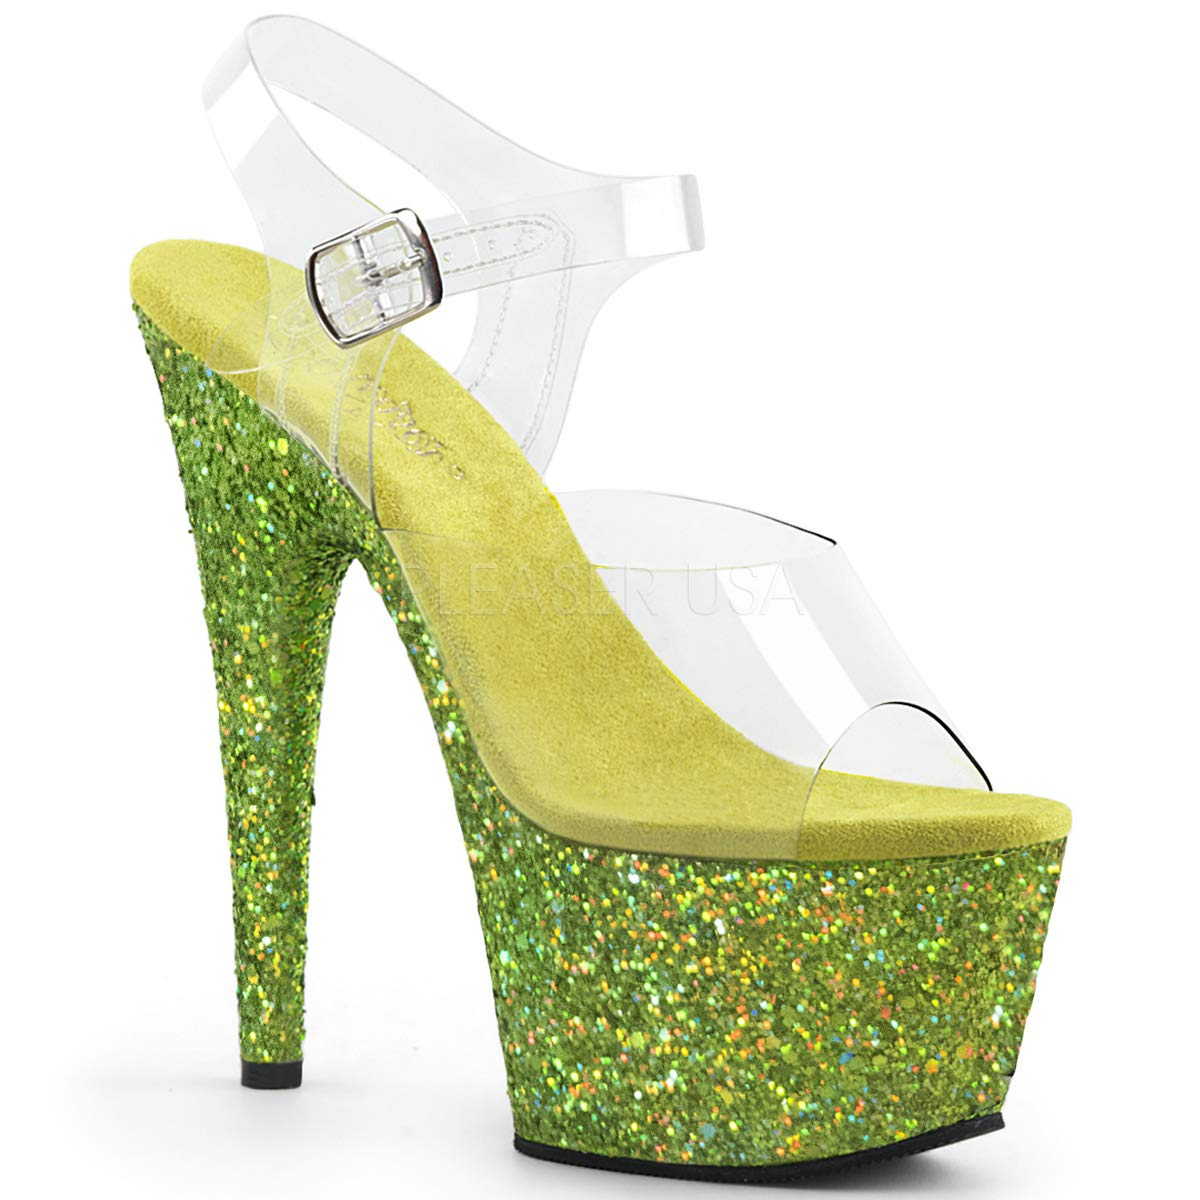 Women's Adore Clear Open Toe Top Lime Glitter Platform Sandals - DeluxeAdultCostumes.com